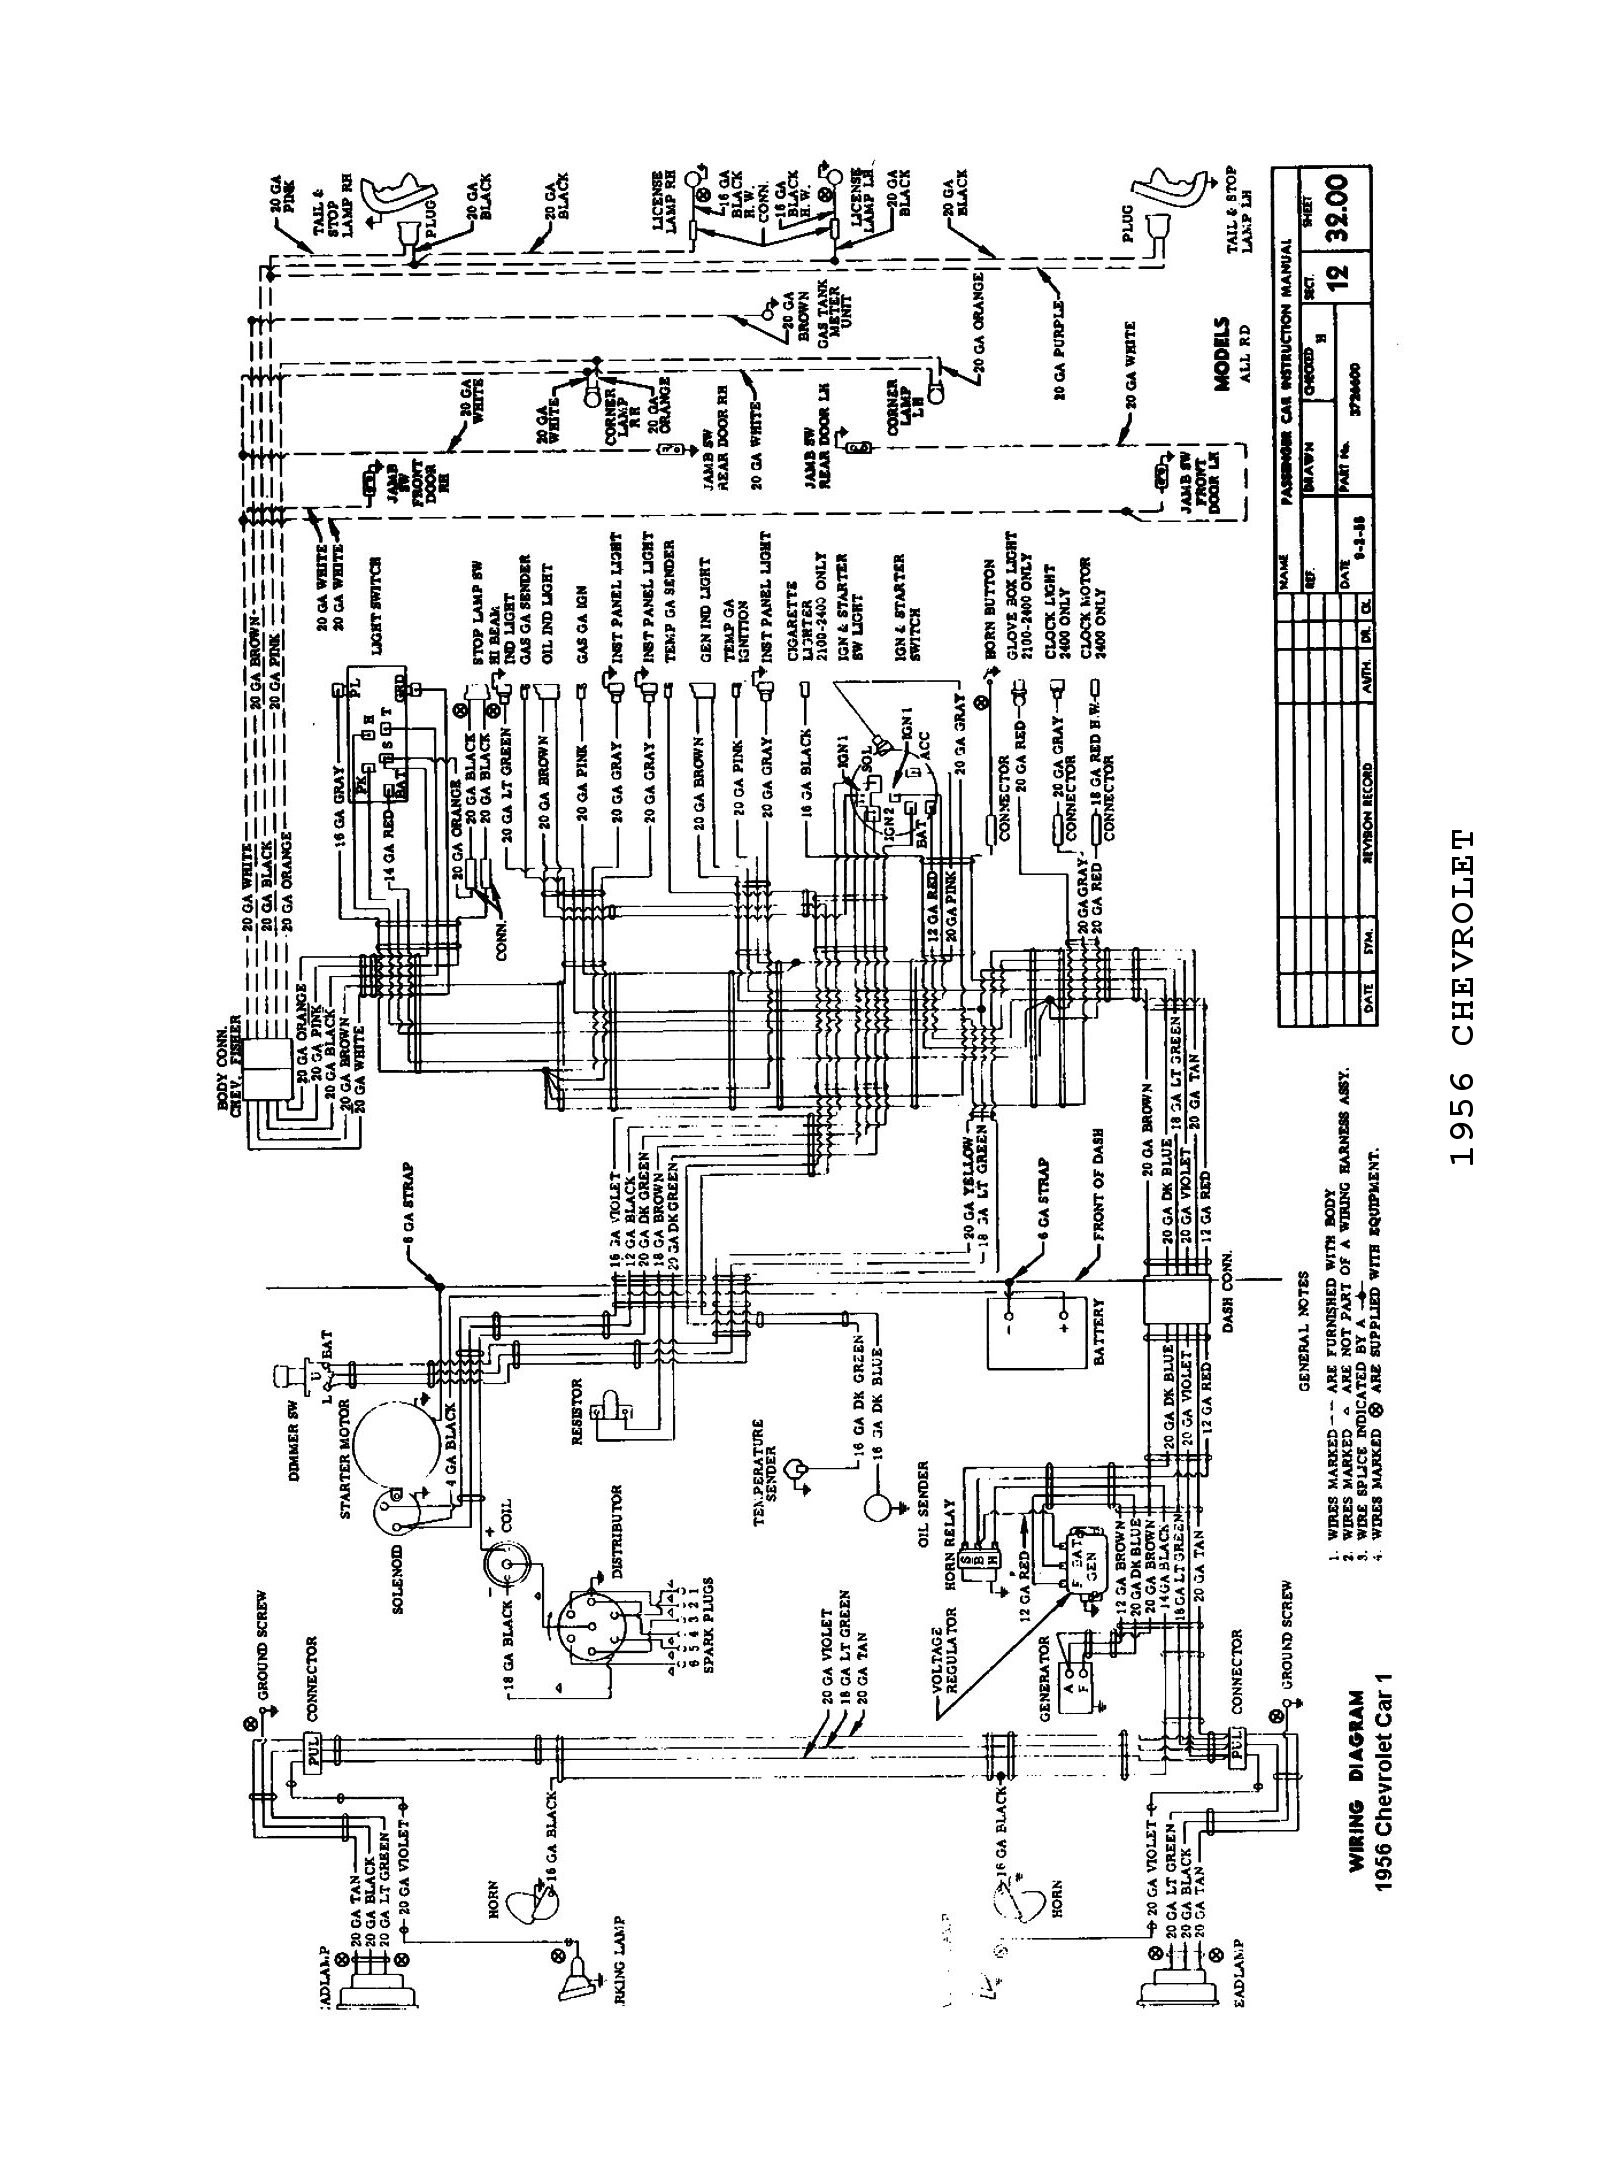 1950 Chevy Pickup Wiring Harness Free Image Diagram, 1950